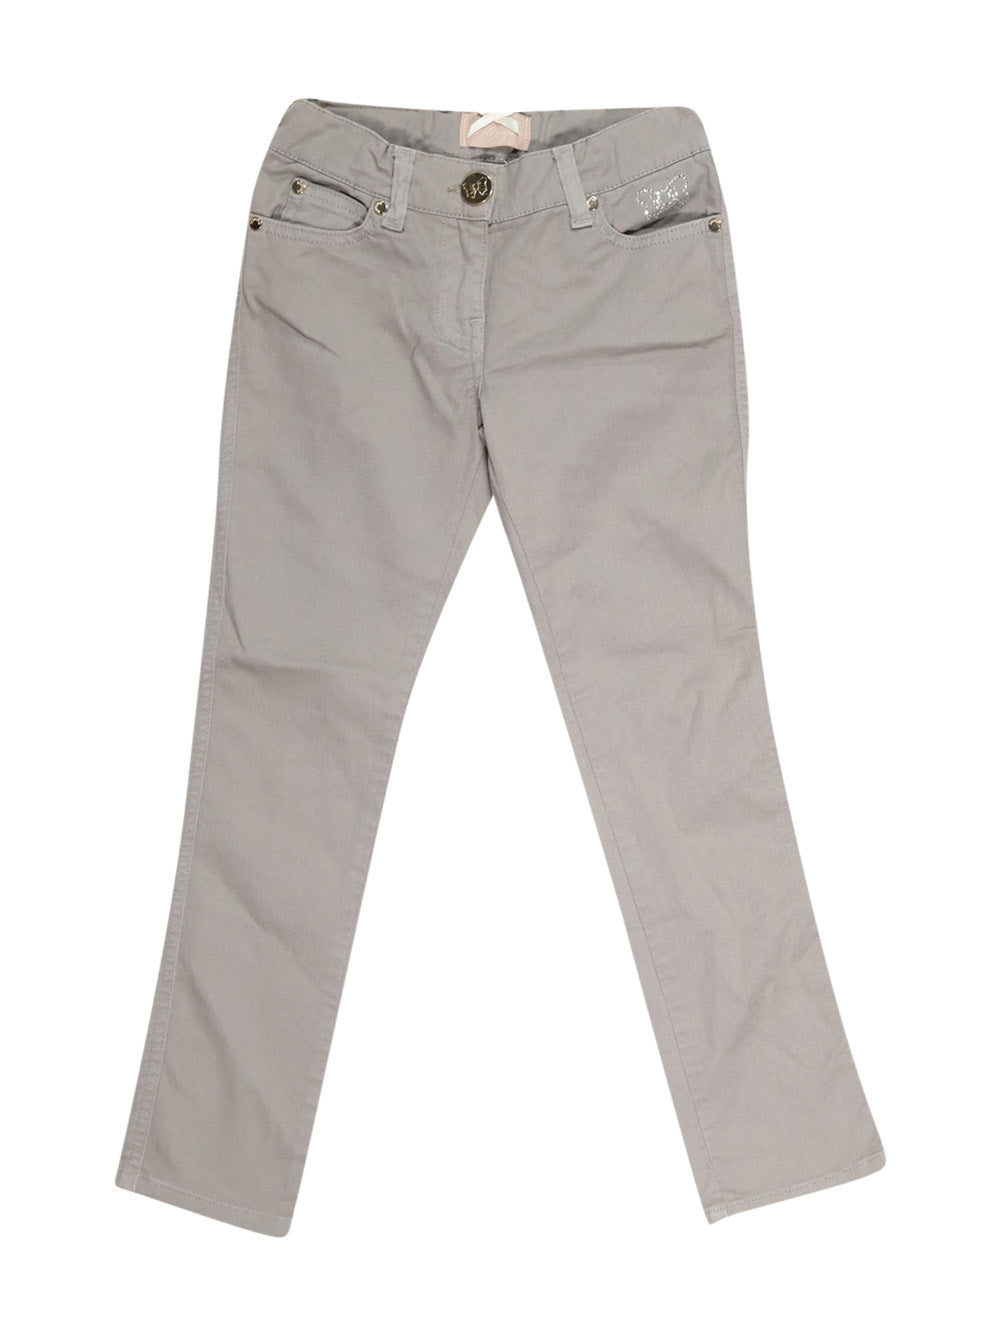 Front photo of Preloved Minifix Grey Girl's trousers - size 7-8 yrs